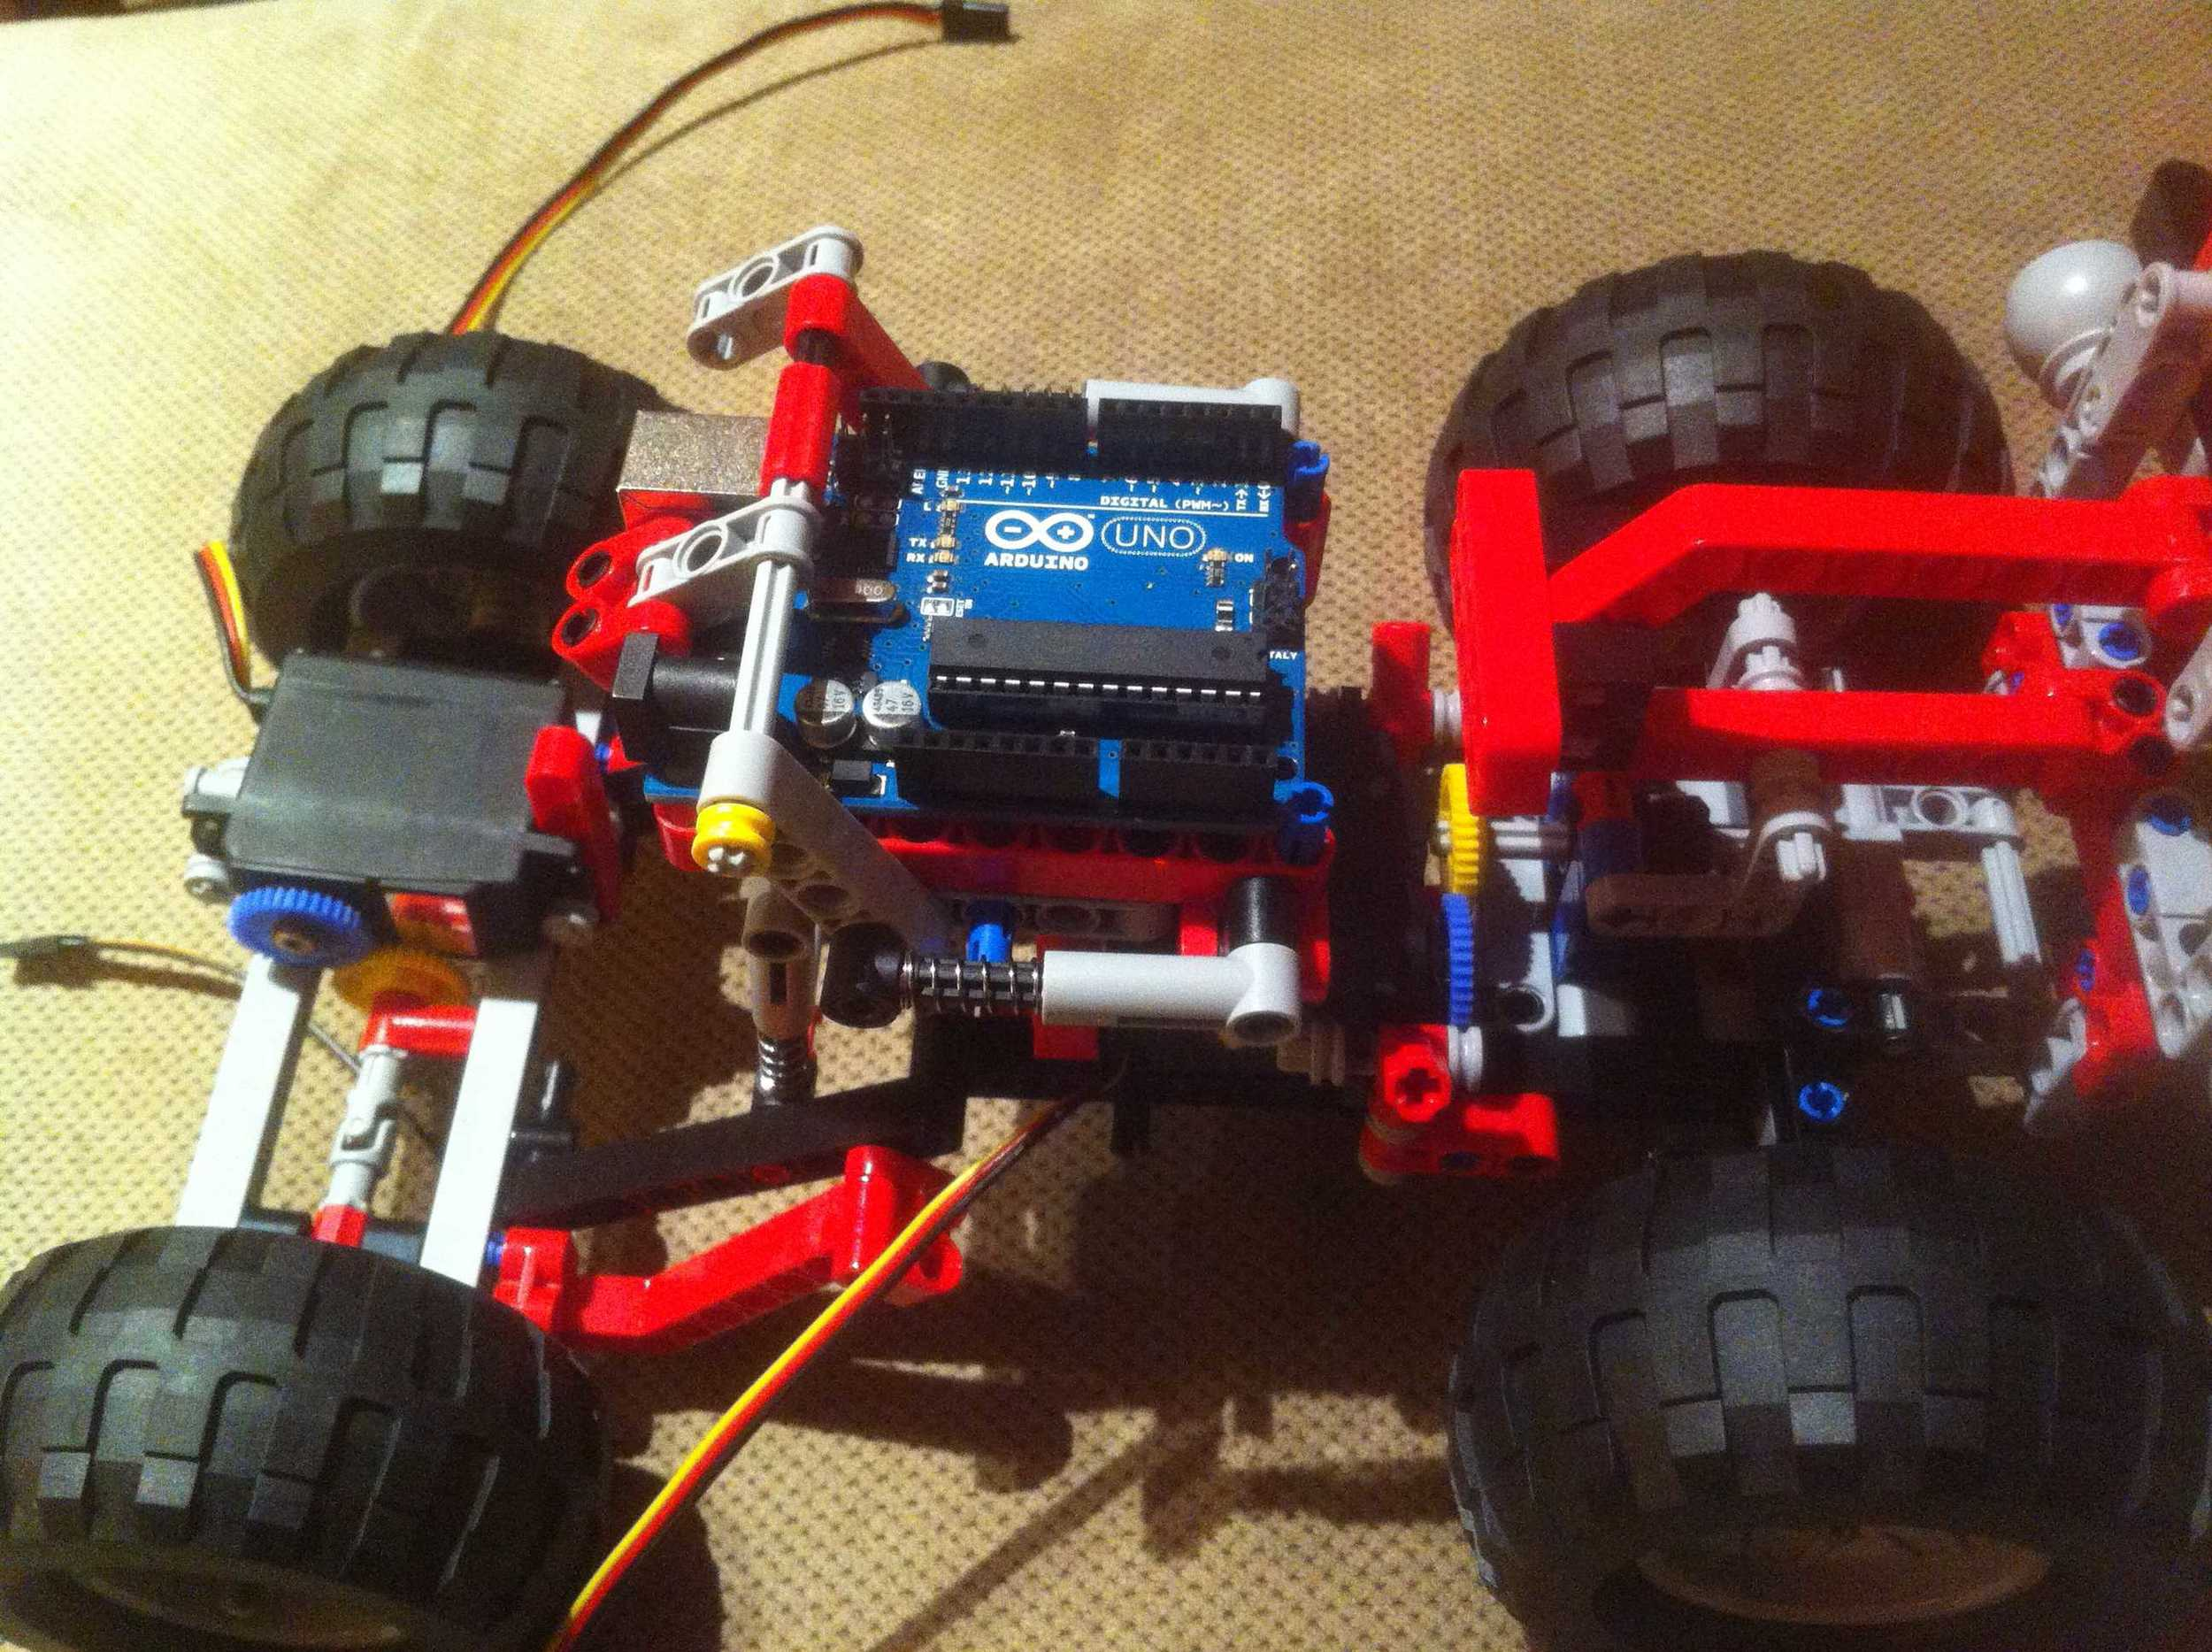 Full car with arduino